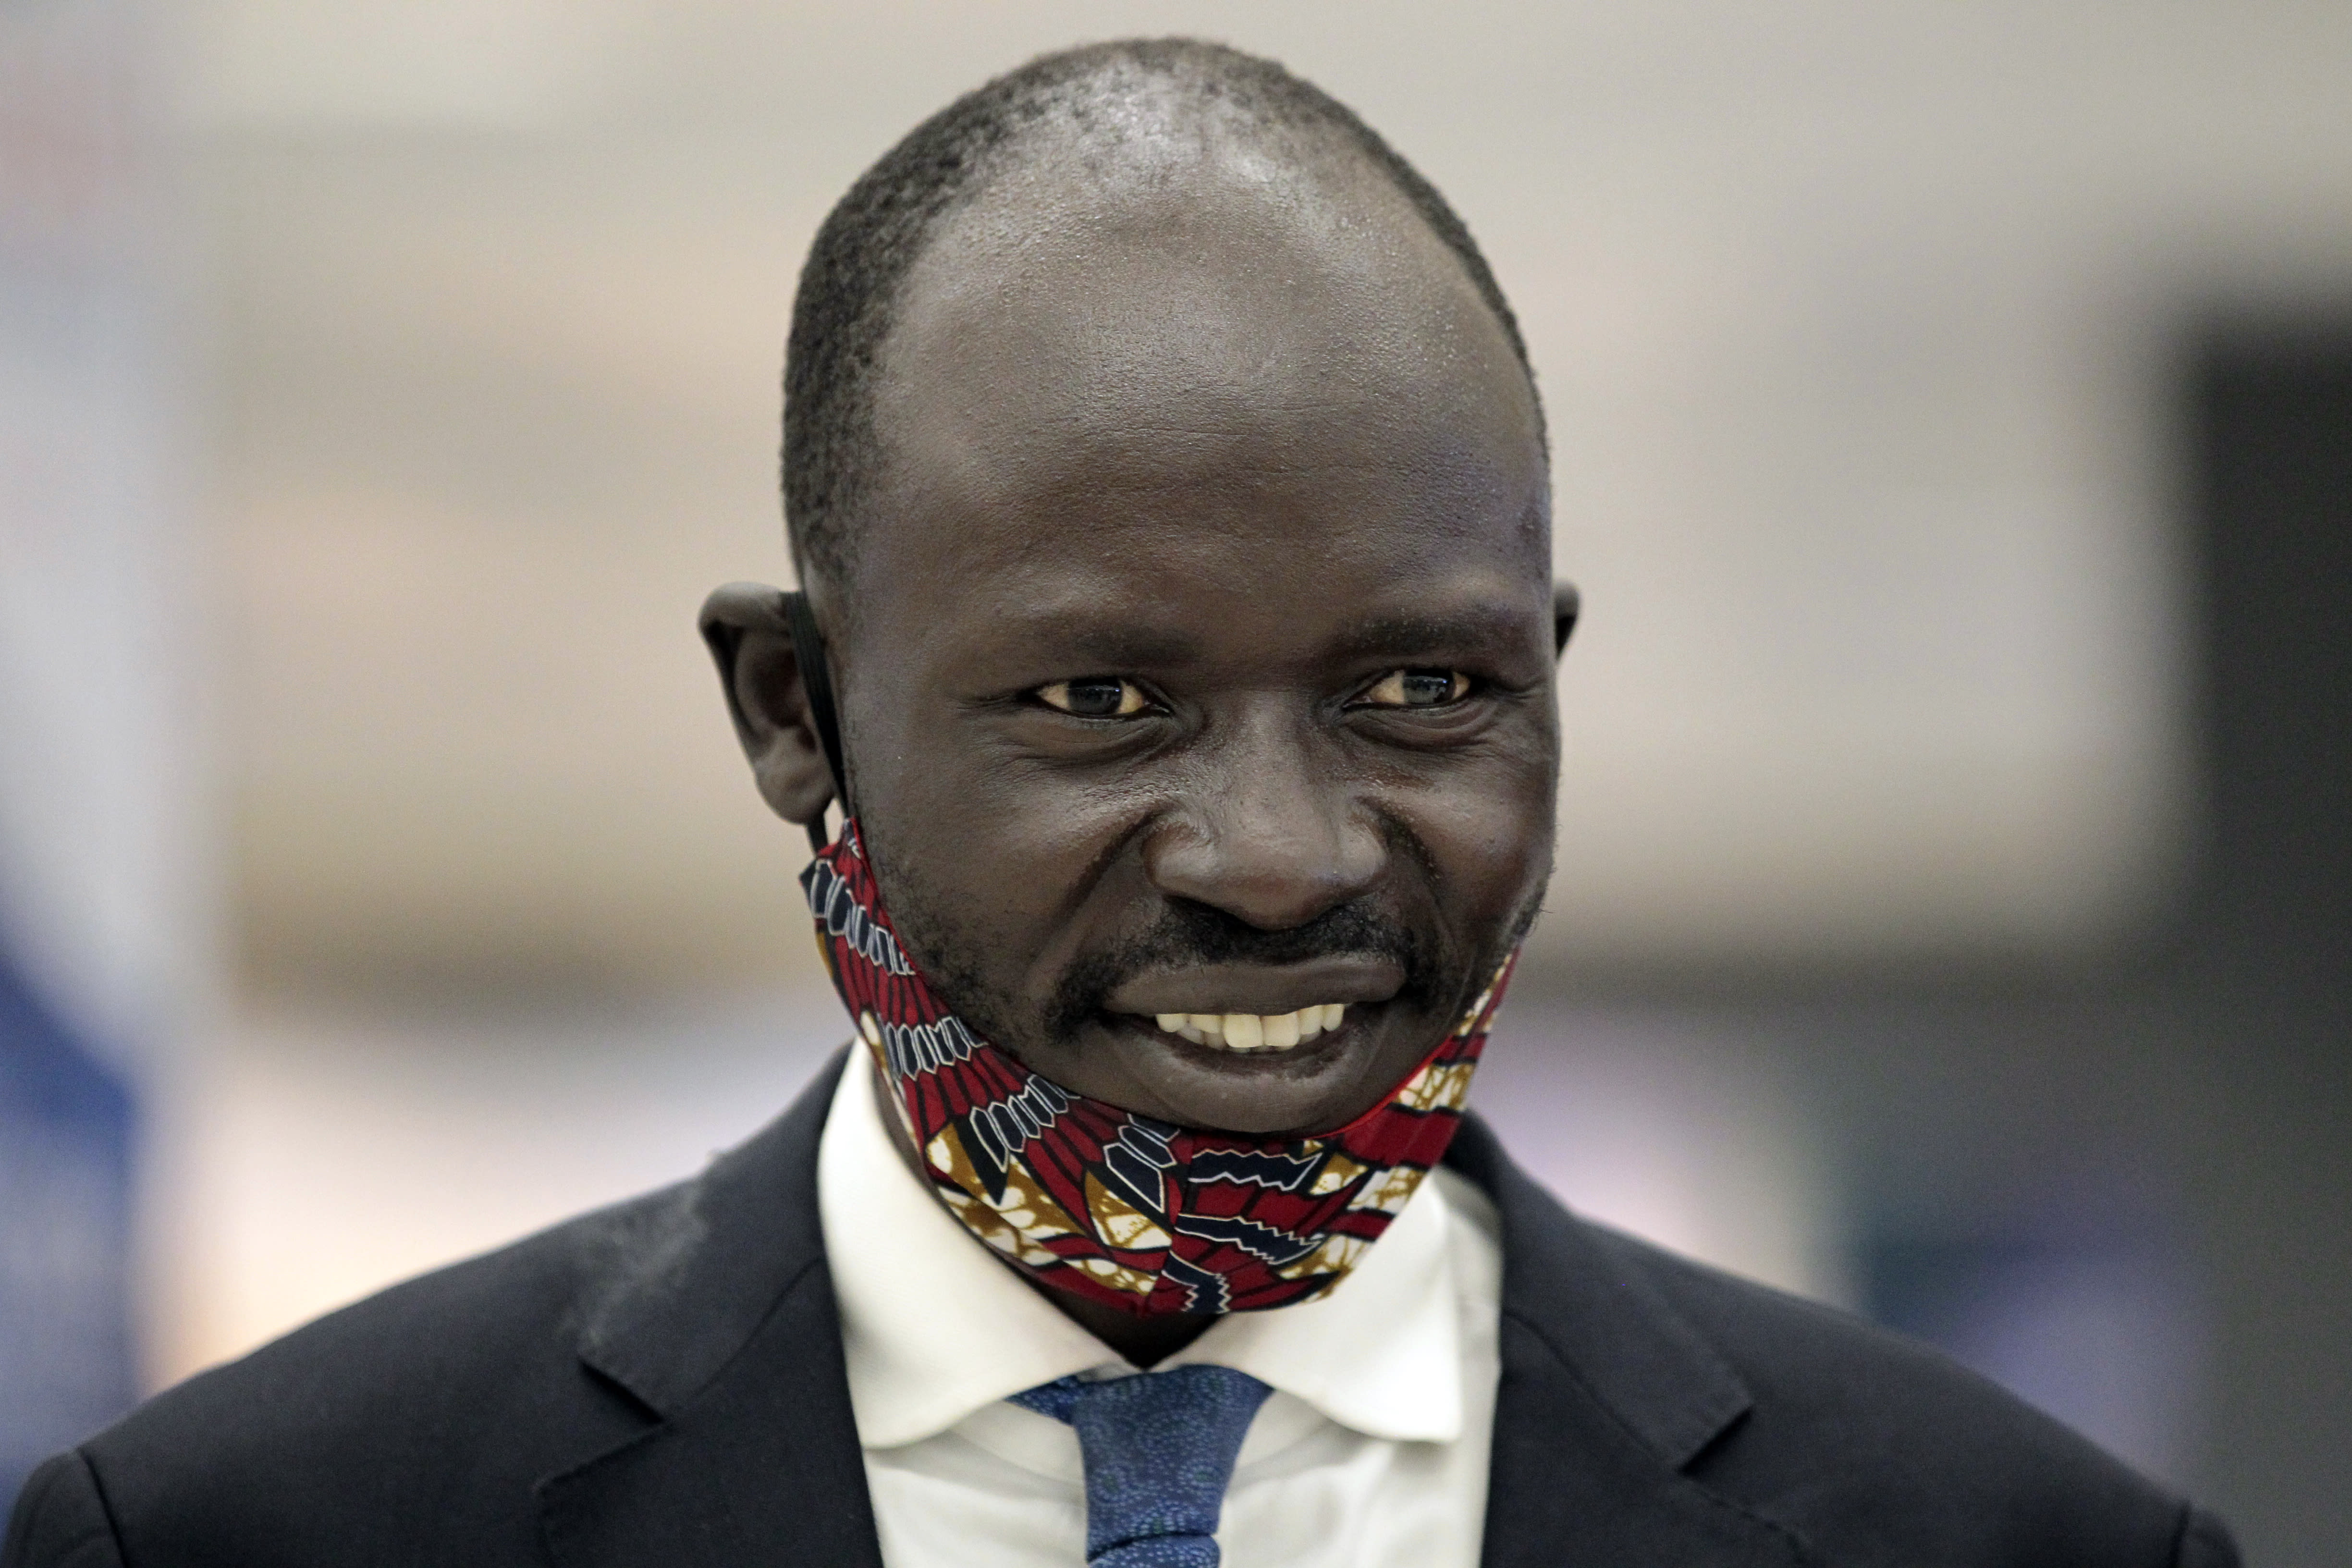 Peter Biar Ajak smiles before giving an interview upon his arrival at Washington Dulles International Airport in Chantilly, Va., Thursday, July 23, 2020. (AP Photo/Luis M. Alvarez)